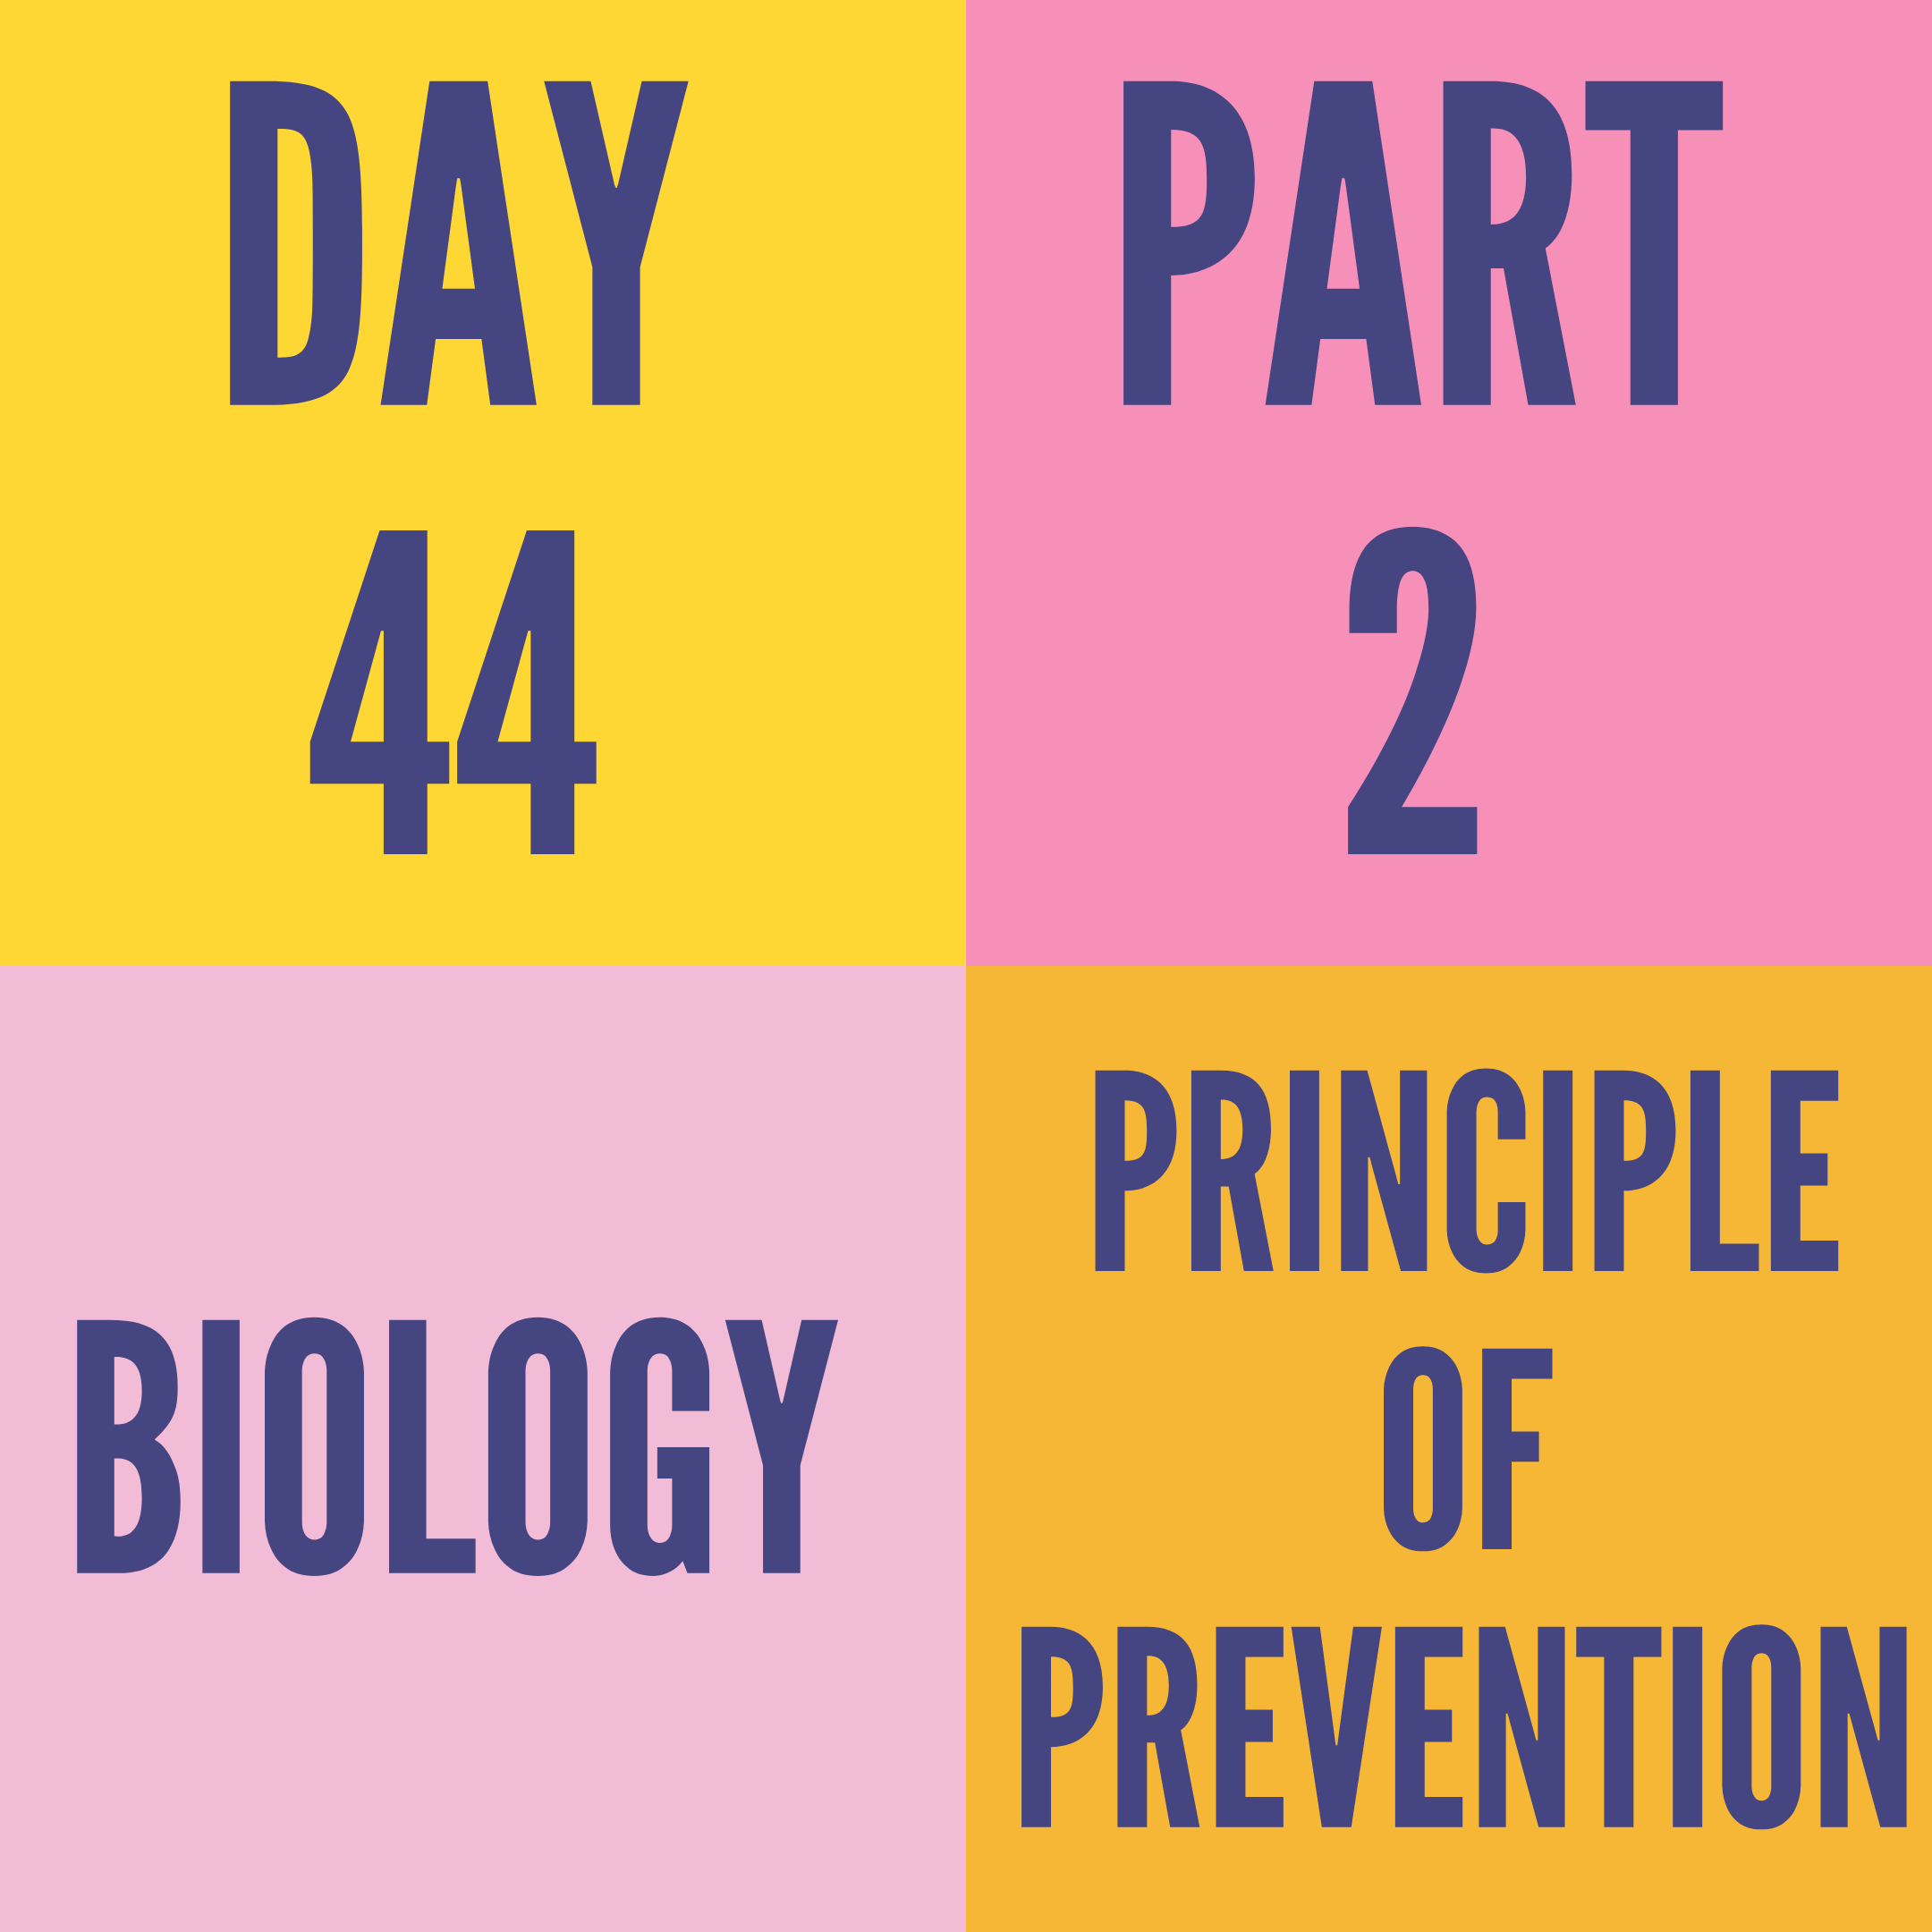 DAY-44 PART-2 PRINCIPLE OF PREVENTION